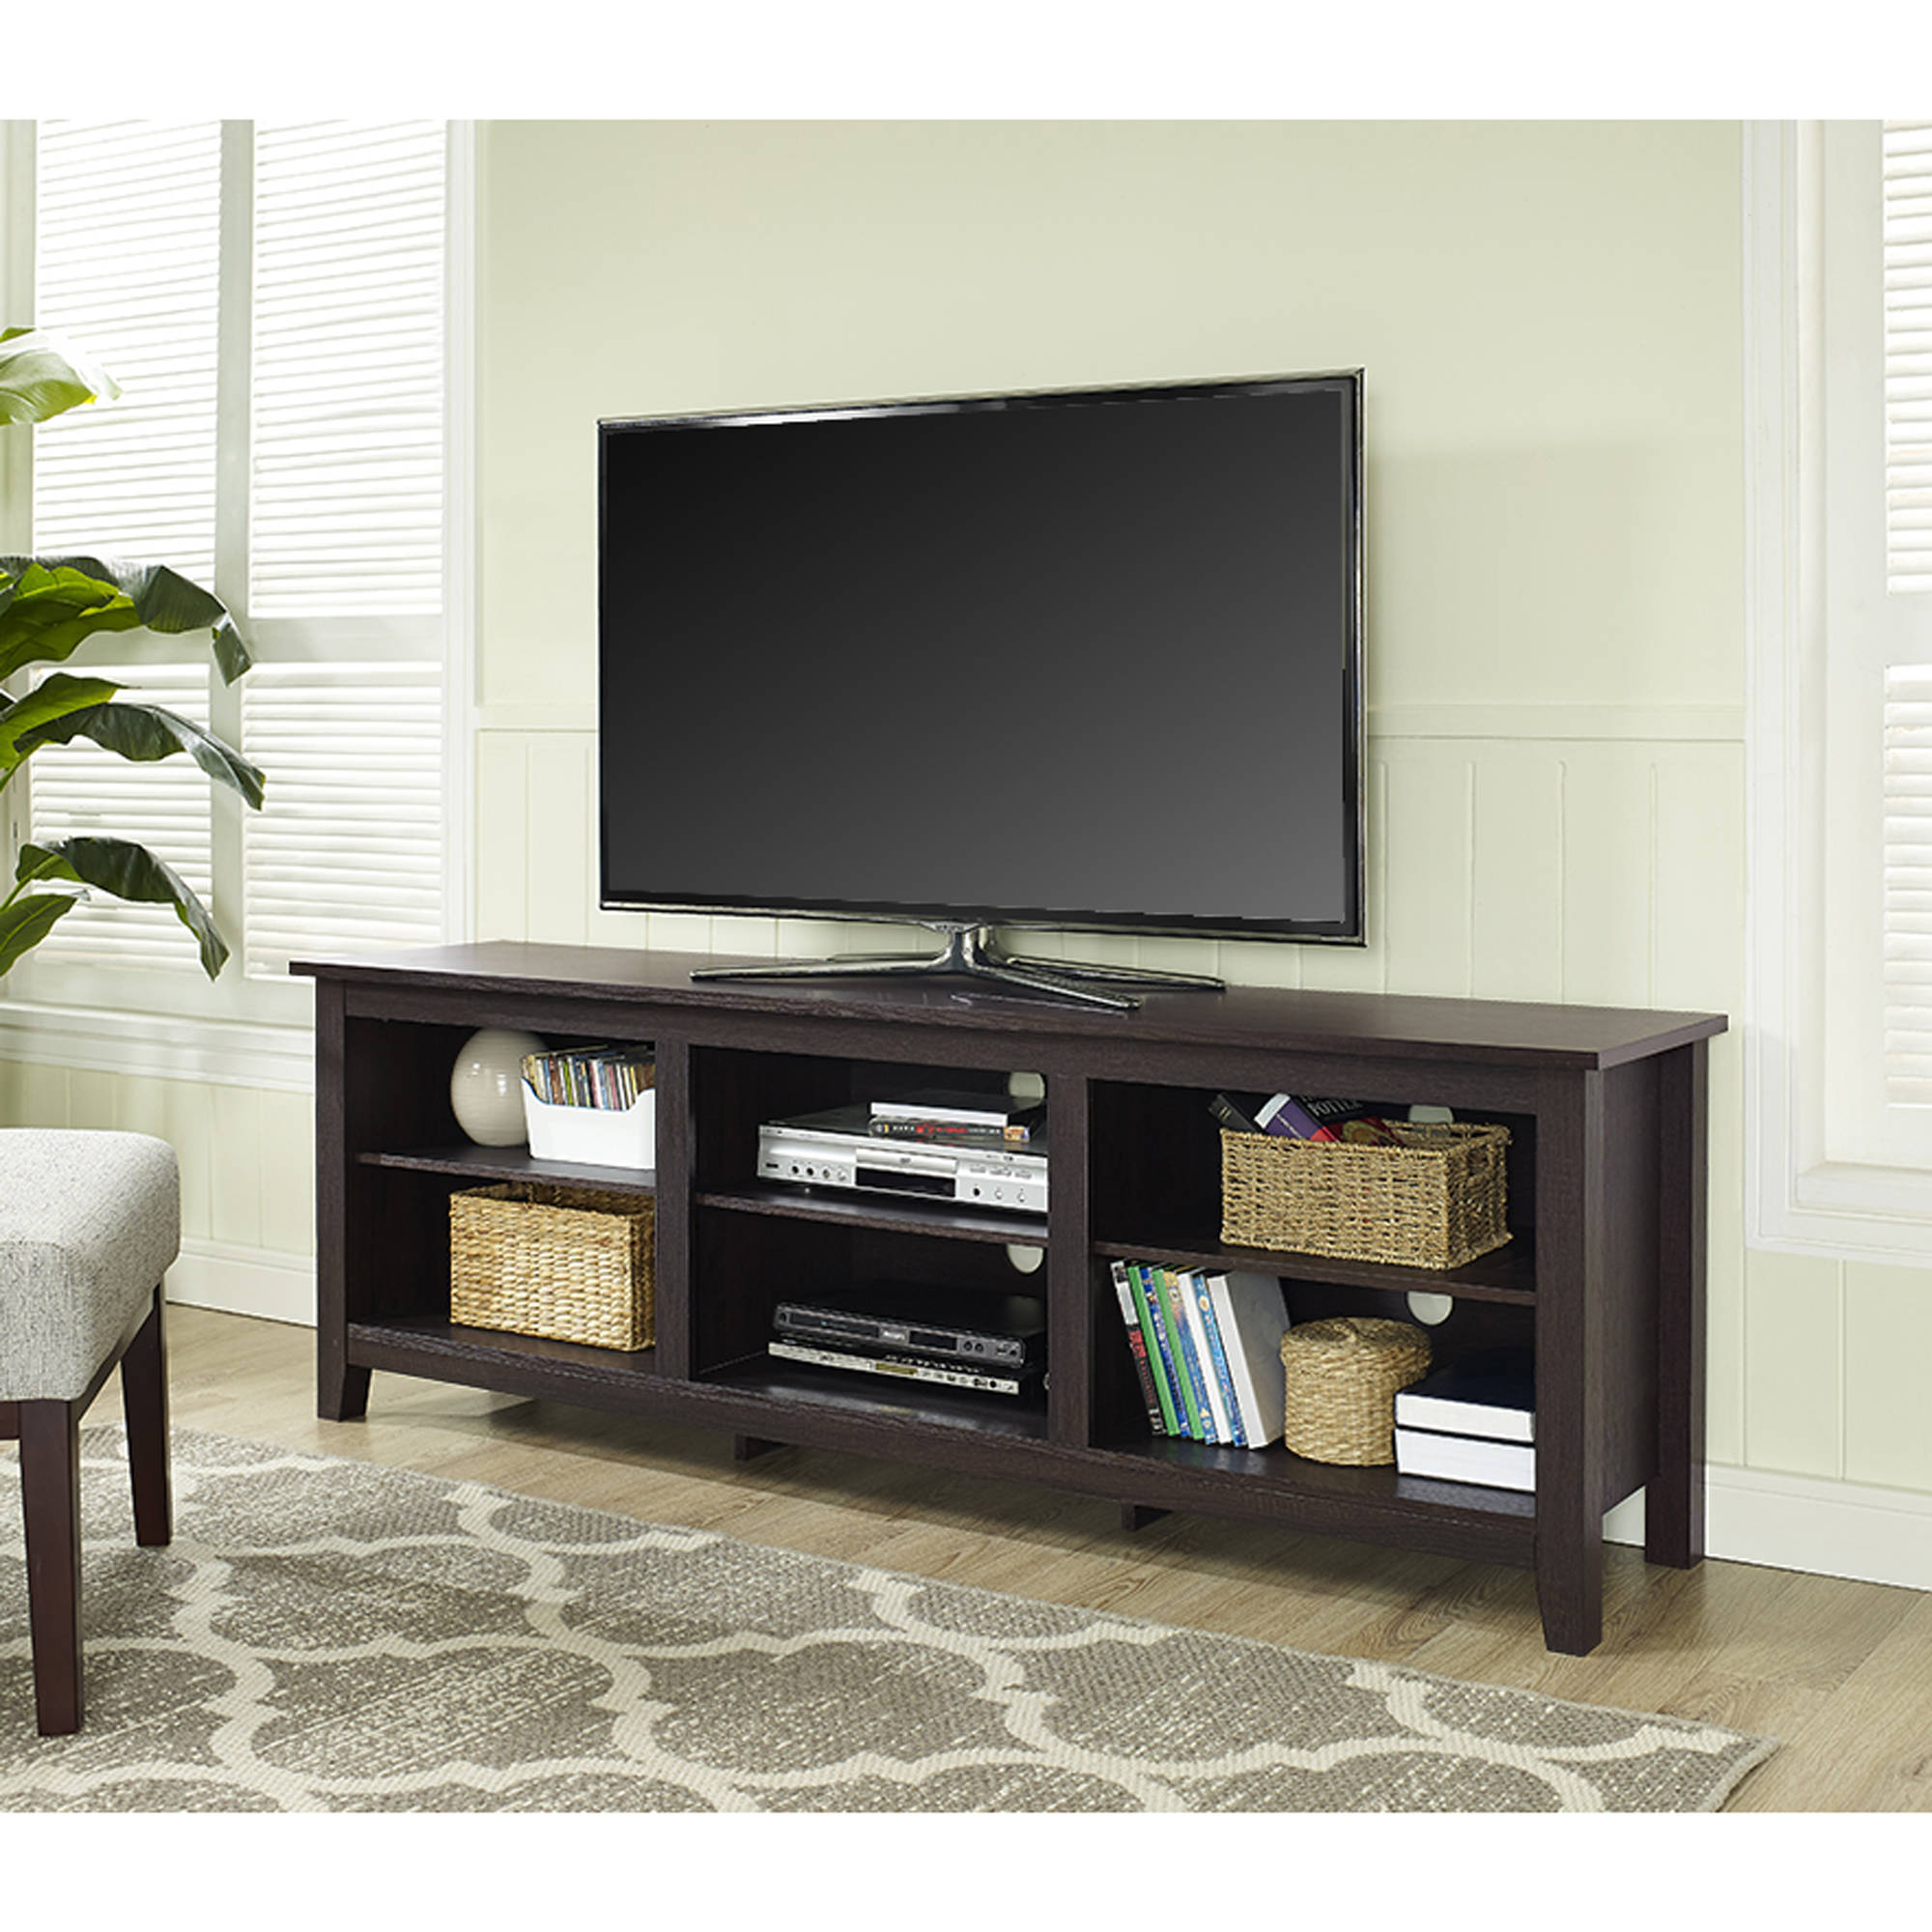 Room Wood Shelf Entertainment Target Designs Murah Simple Unit Stand With Regard To Lauderdale 74 Inch Tv Stands (Photo 7 of 30)